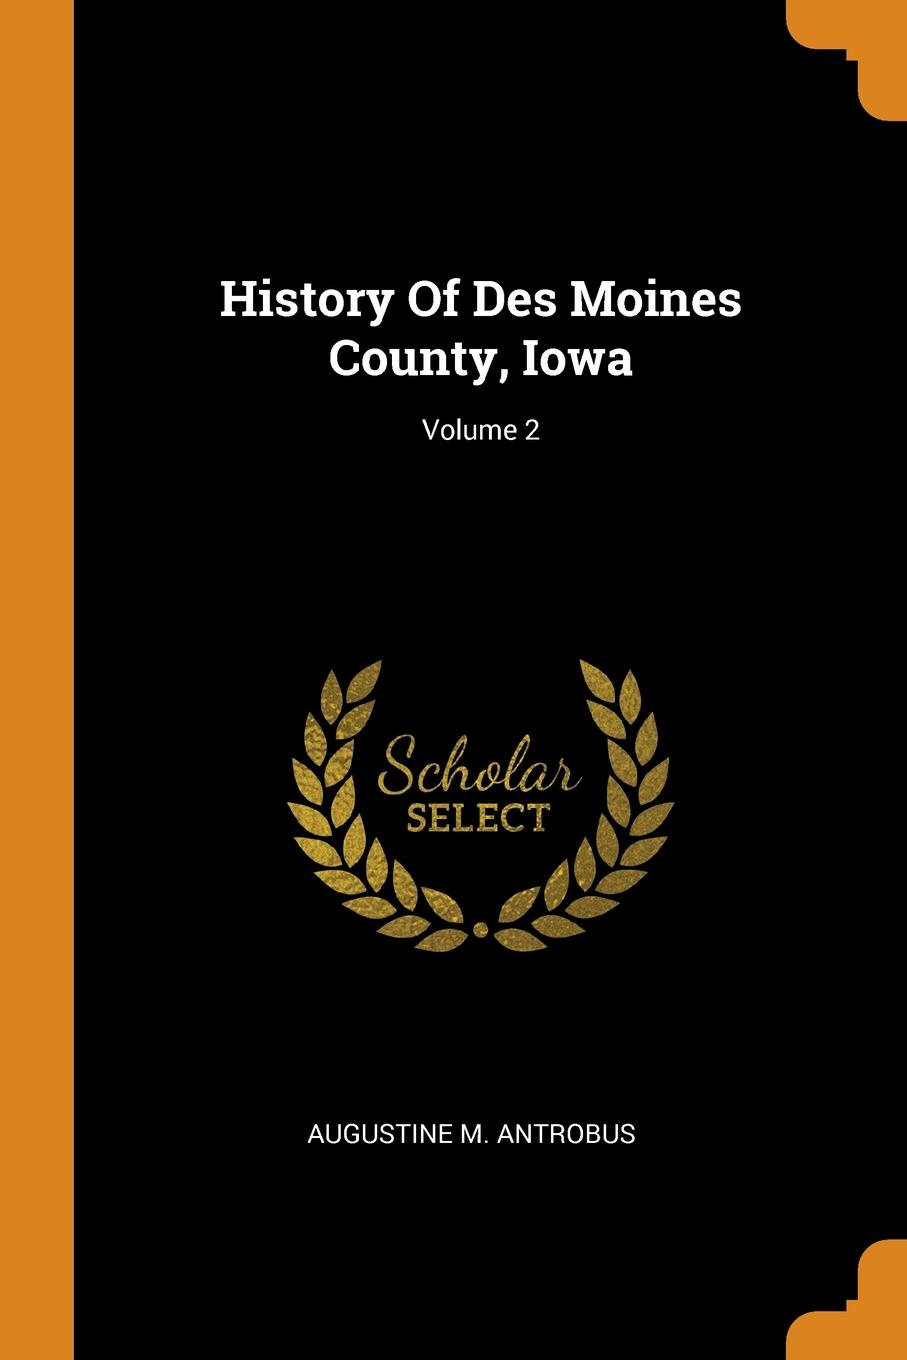 Augustine M. Antrobus History Of Des Moines County, Iowa; Volume 2